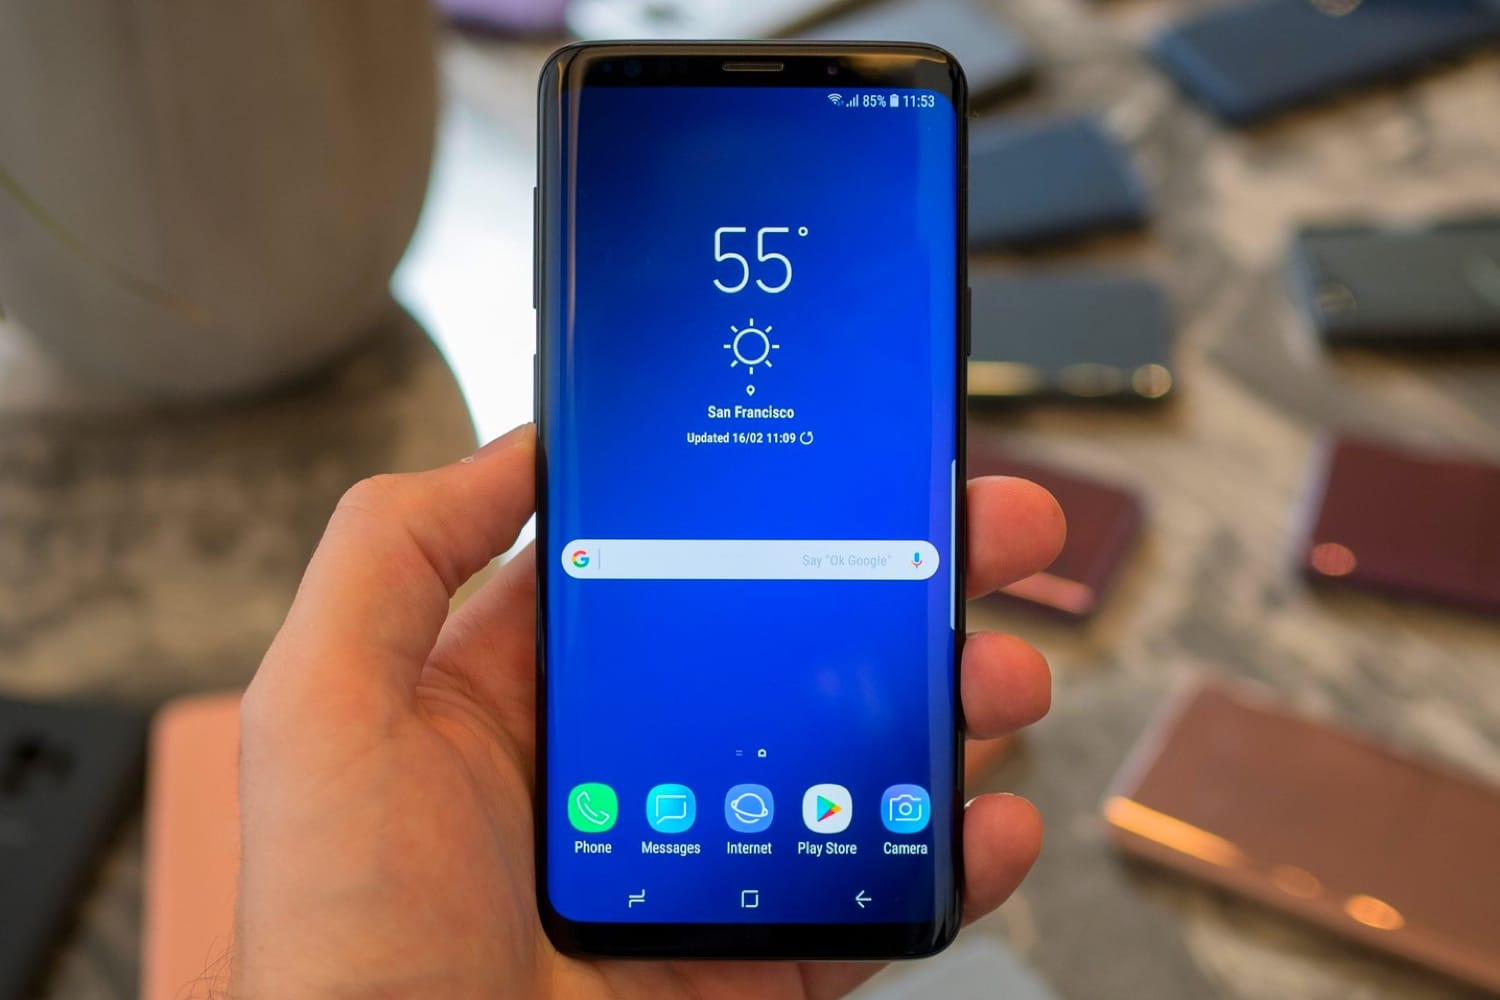 How to factory reset a Samsung Galaxy S9 / S9+ (SM-G960 and SM-G965